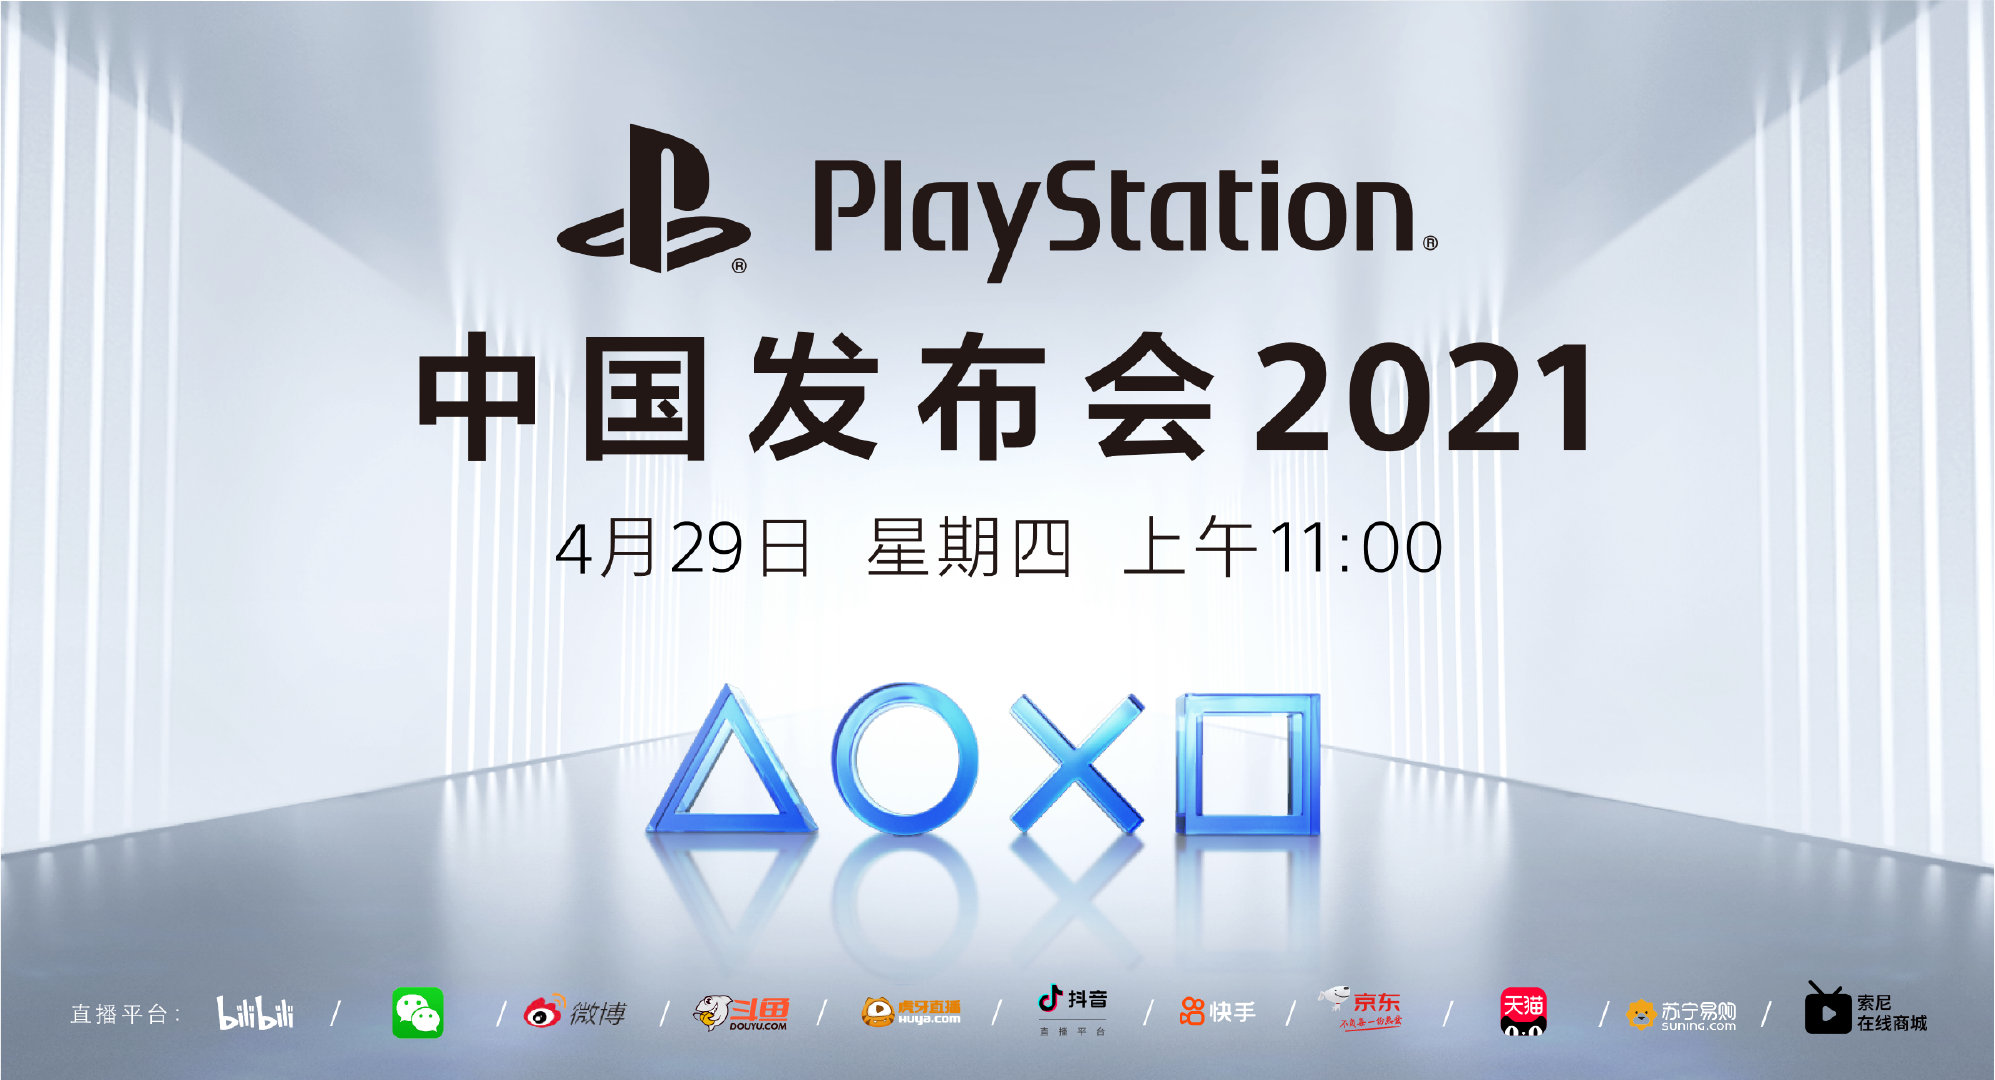 PlayStation China Press Conference 2021